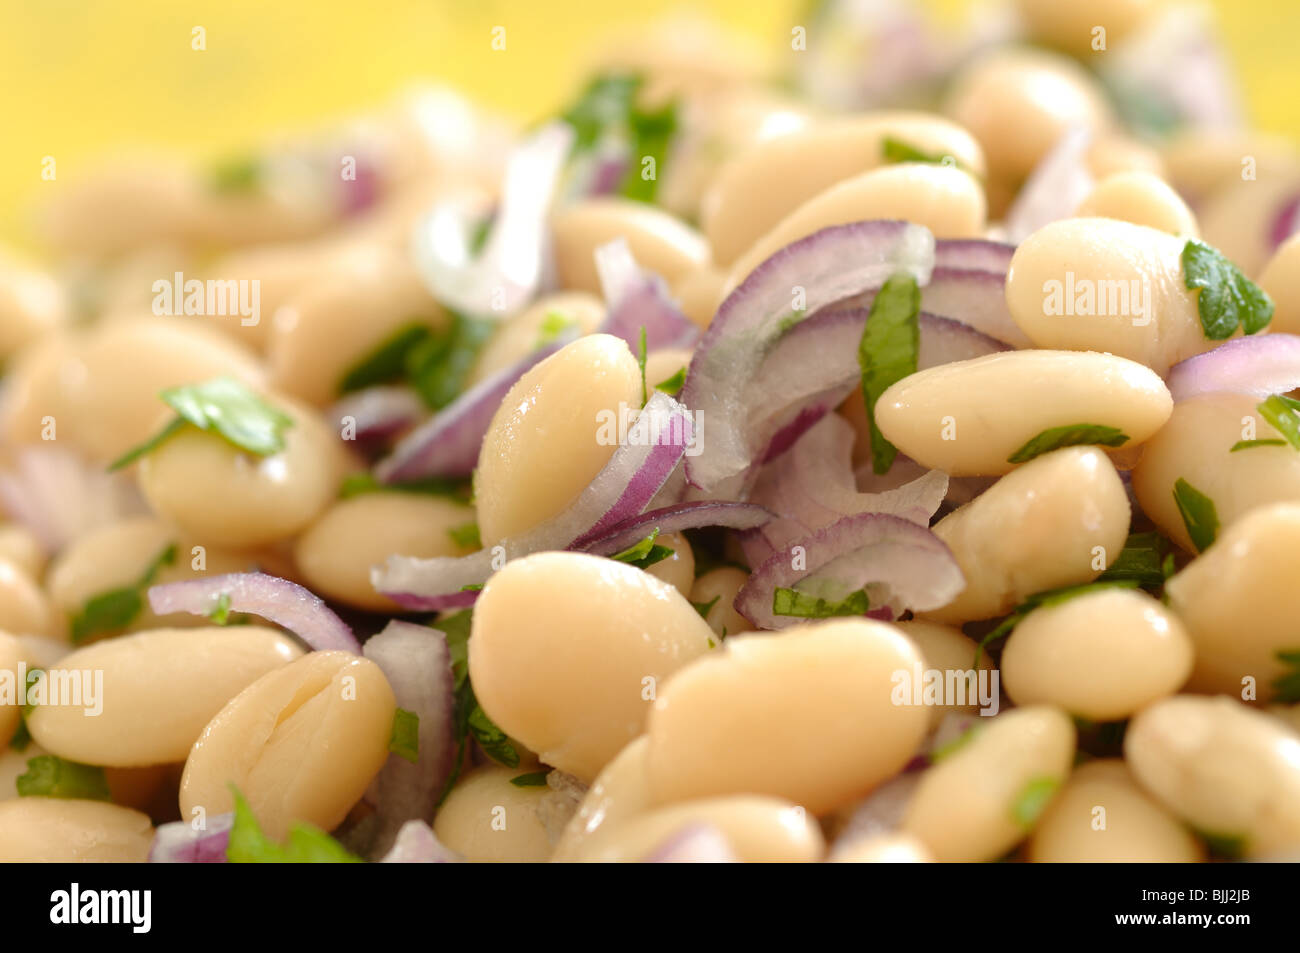 Traditional bulgarian salad made of beans, onion, parsley, salt, vinegar and sunflower oil - Stock Image